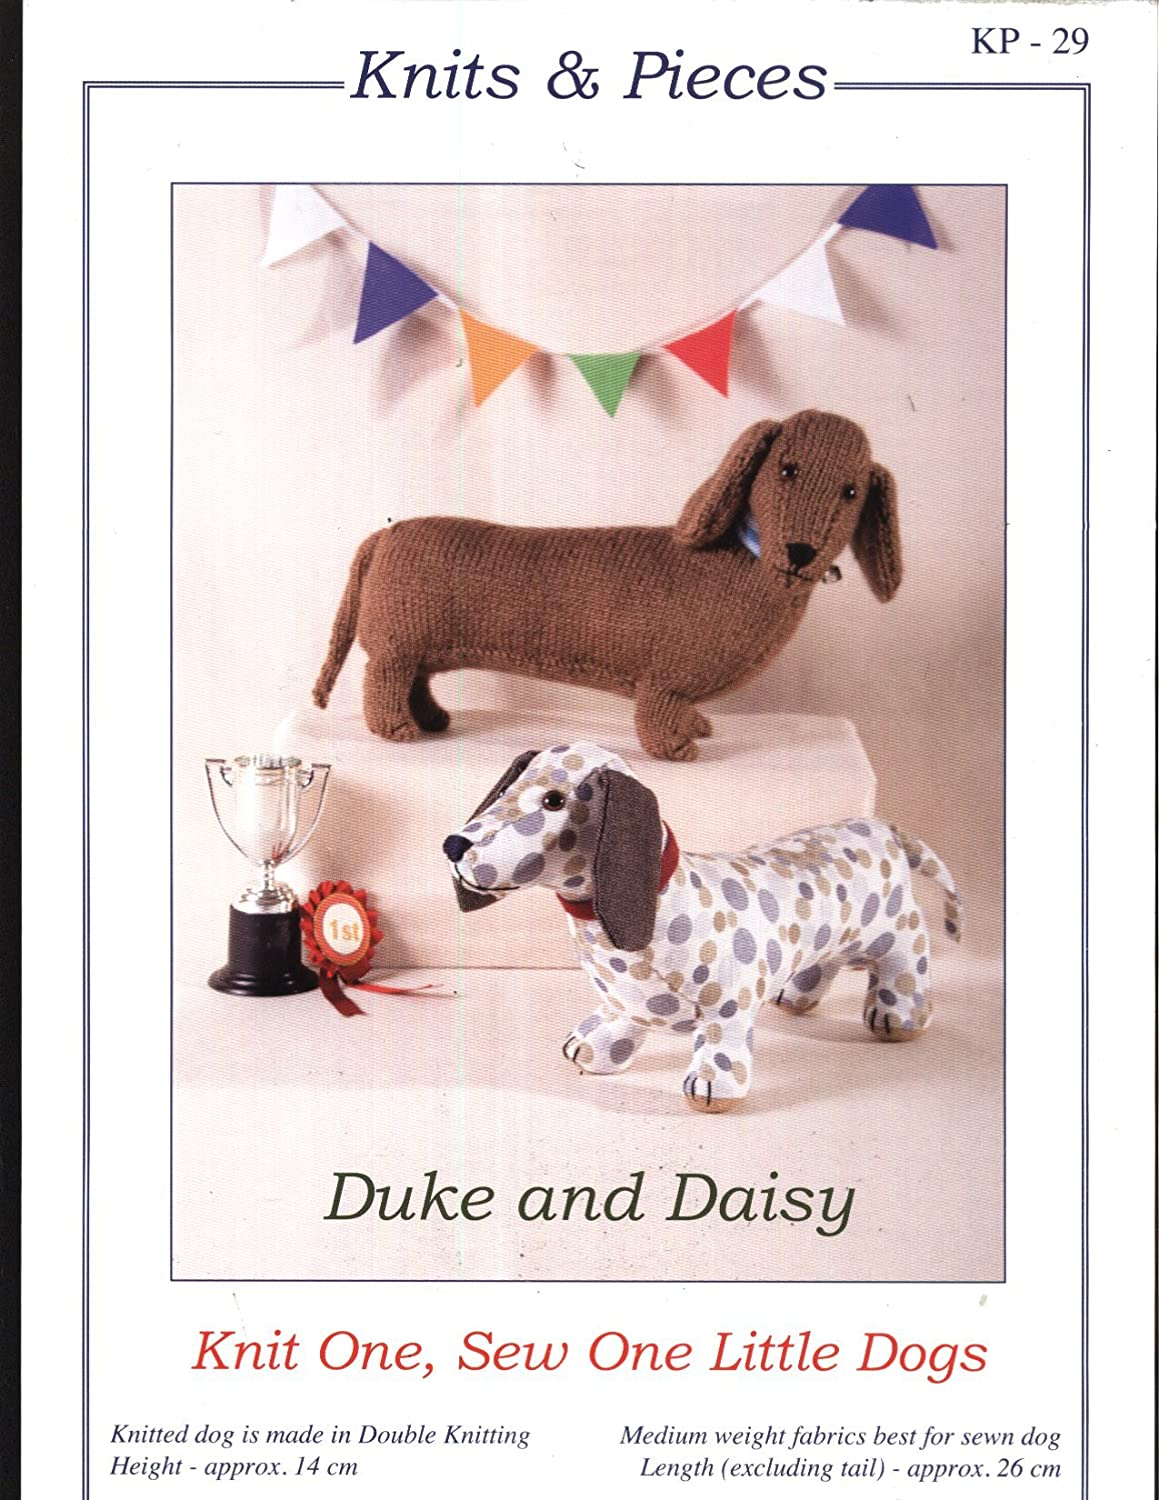 Knits and Pieces Knitting and Sewing Pattern : Duke and Daisy ...